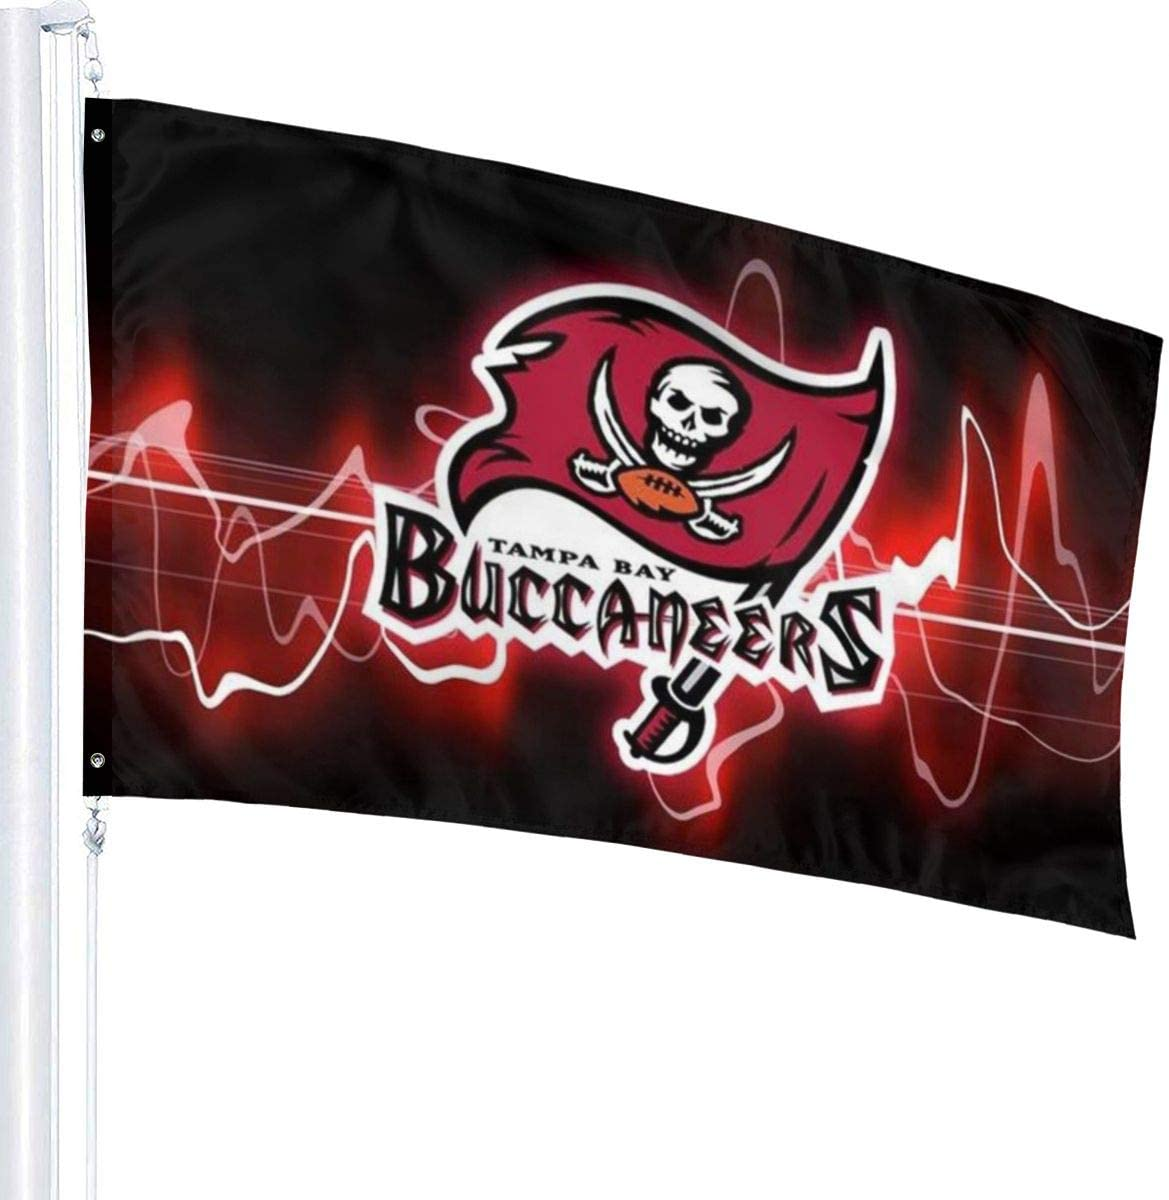 Angelsept Ta-mpa Ba-y BUC-Cane-ers Flag 3x5 Foot Polyester UV Fade Resistant Banner Flag for College Football Games Fraternities Parties Dorm Room Outdoor Indoor Sport